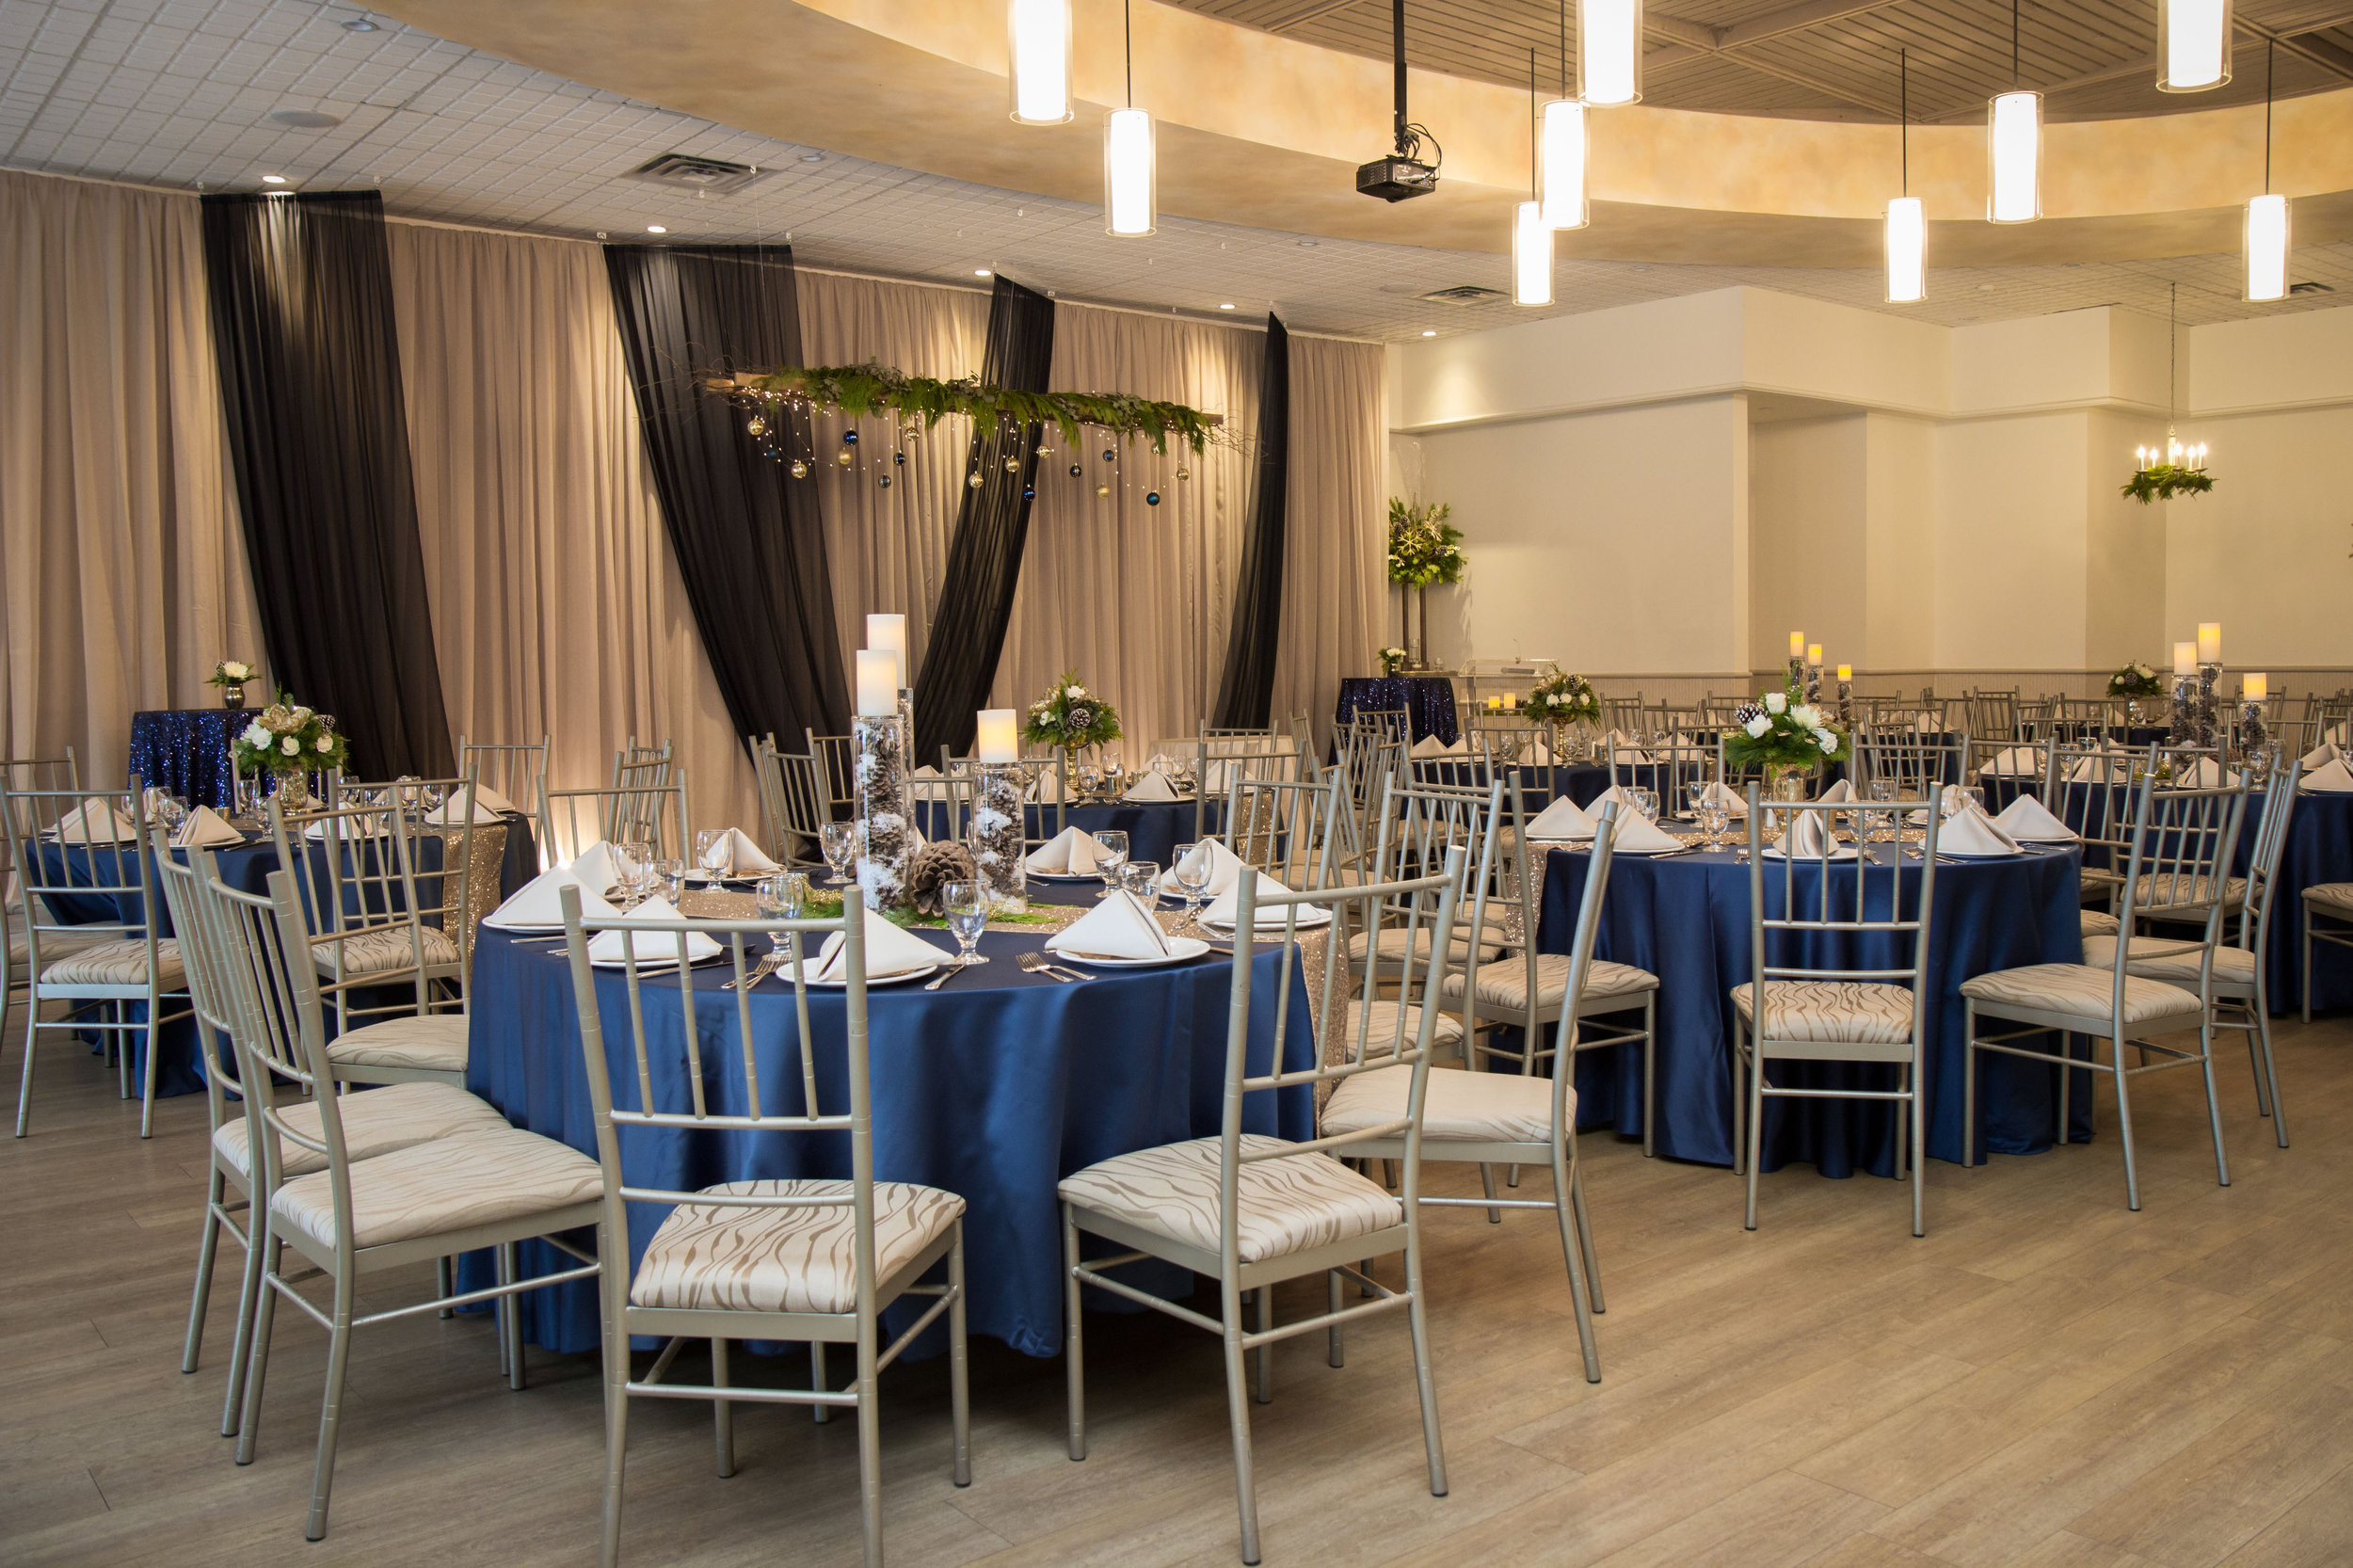 Rich navy blue linen, suspended winter greens, and flickering candlelight add an intimate holiday feel to a winter wedding setup. Venue:  St. Marys Golf & Country Club . Decor & Styling:  Above & Beyond Event Design . Floral Design:  Lyric Flowers . Photography: David Jordan Photography.